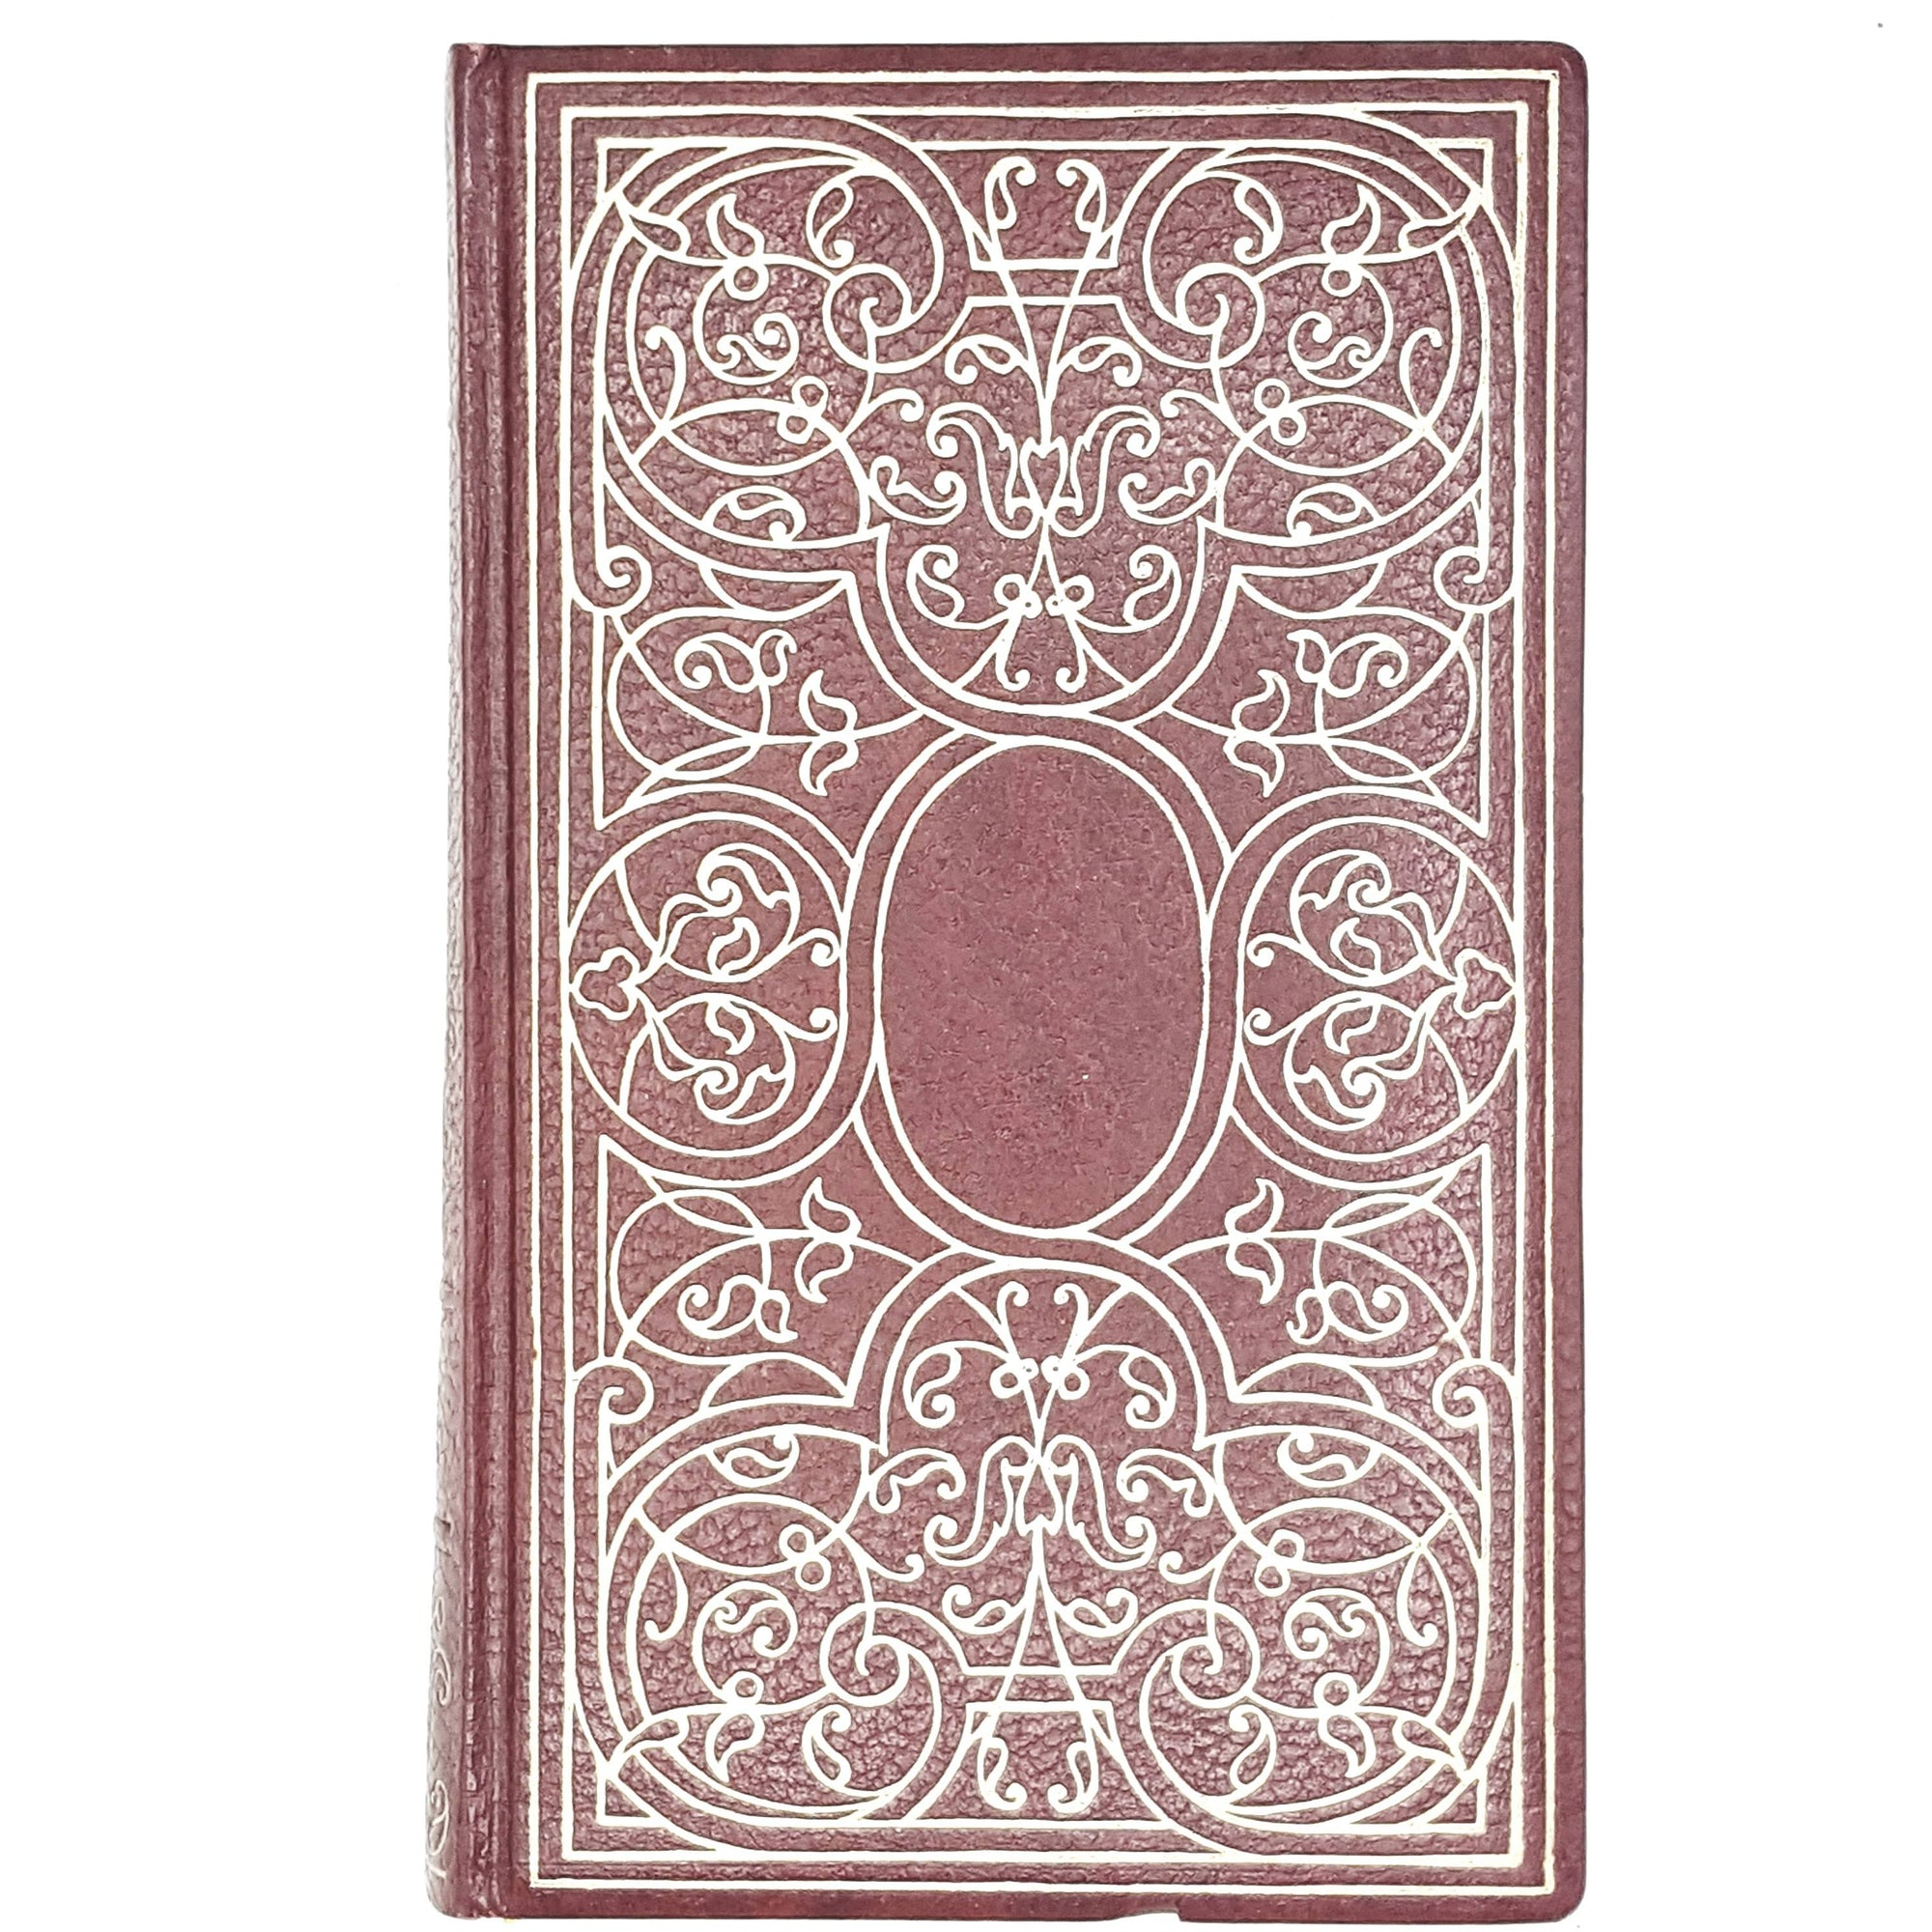 Oscar Wilde's Complete Works vol. III 1966